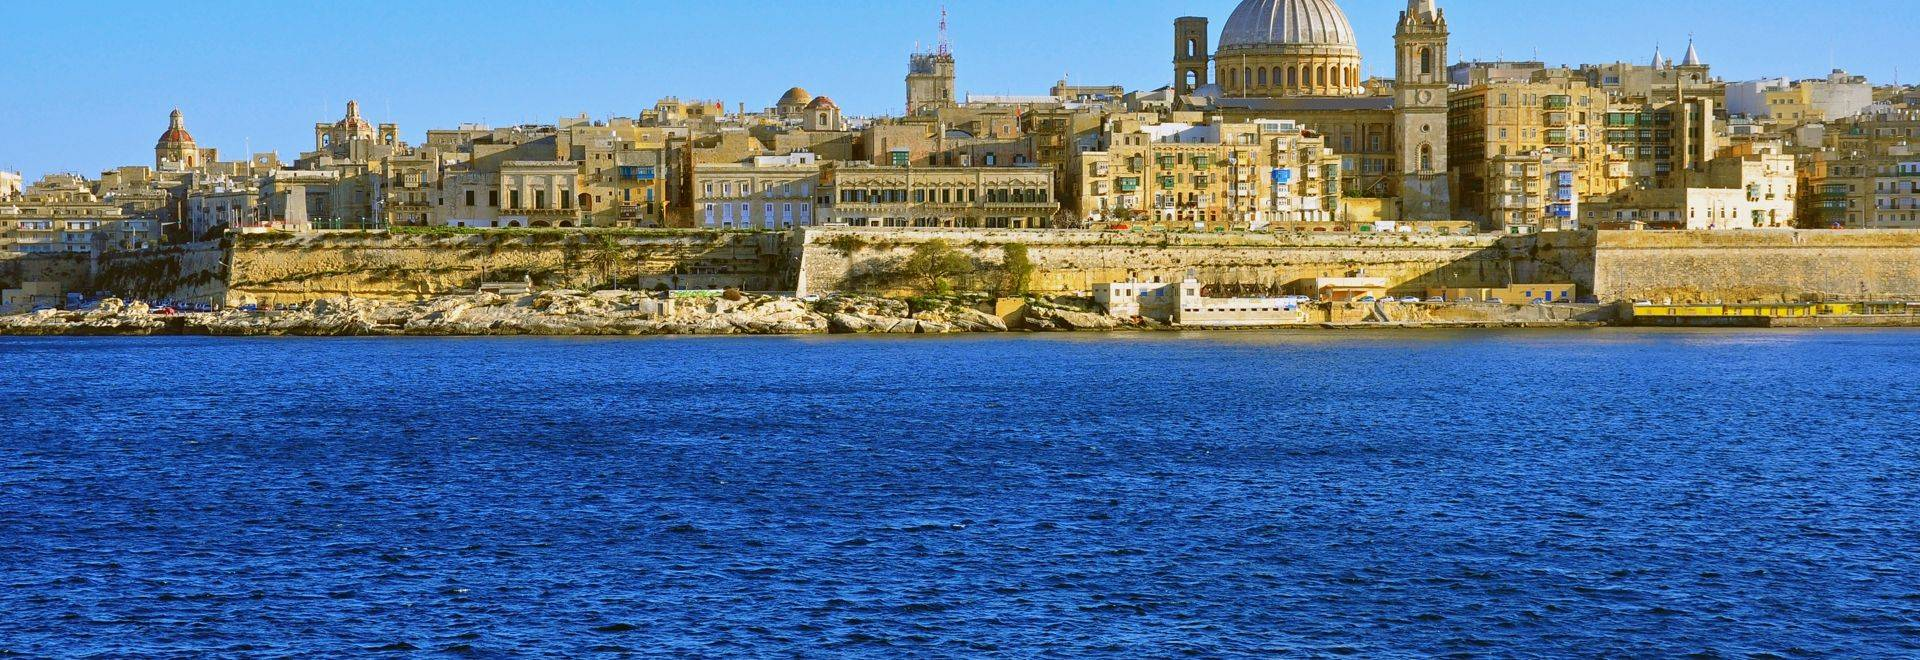 Shutterstock 177425654 Panorama Of Valletta